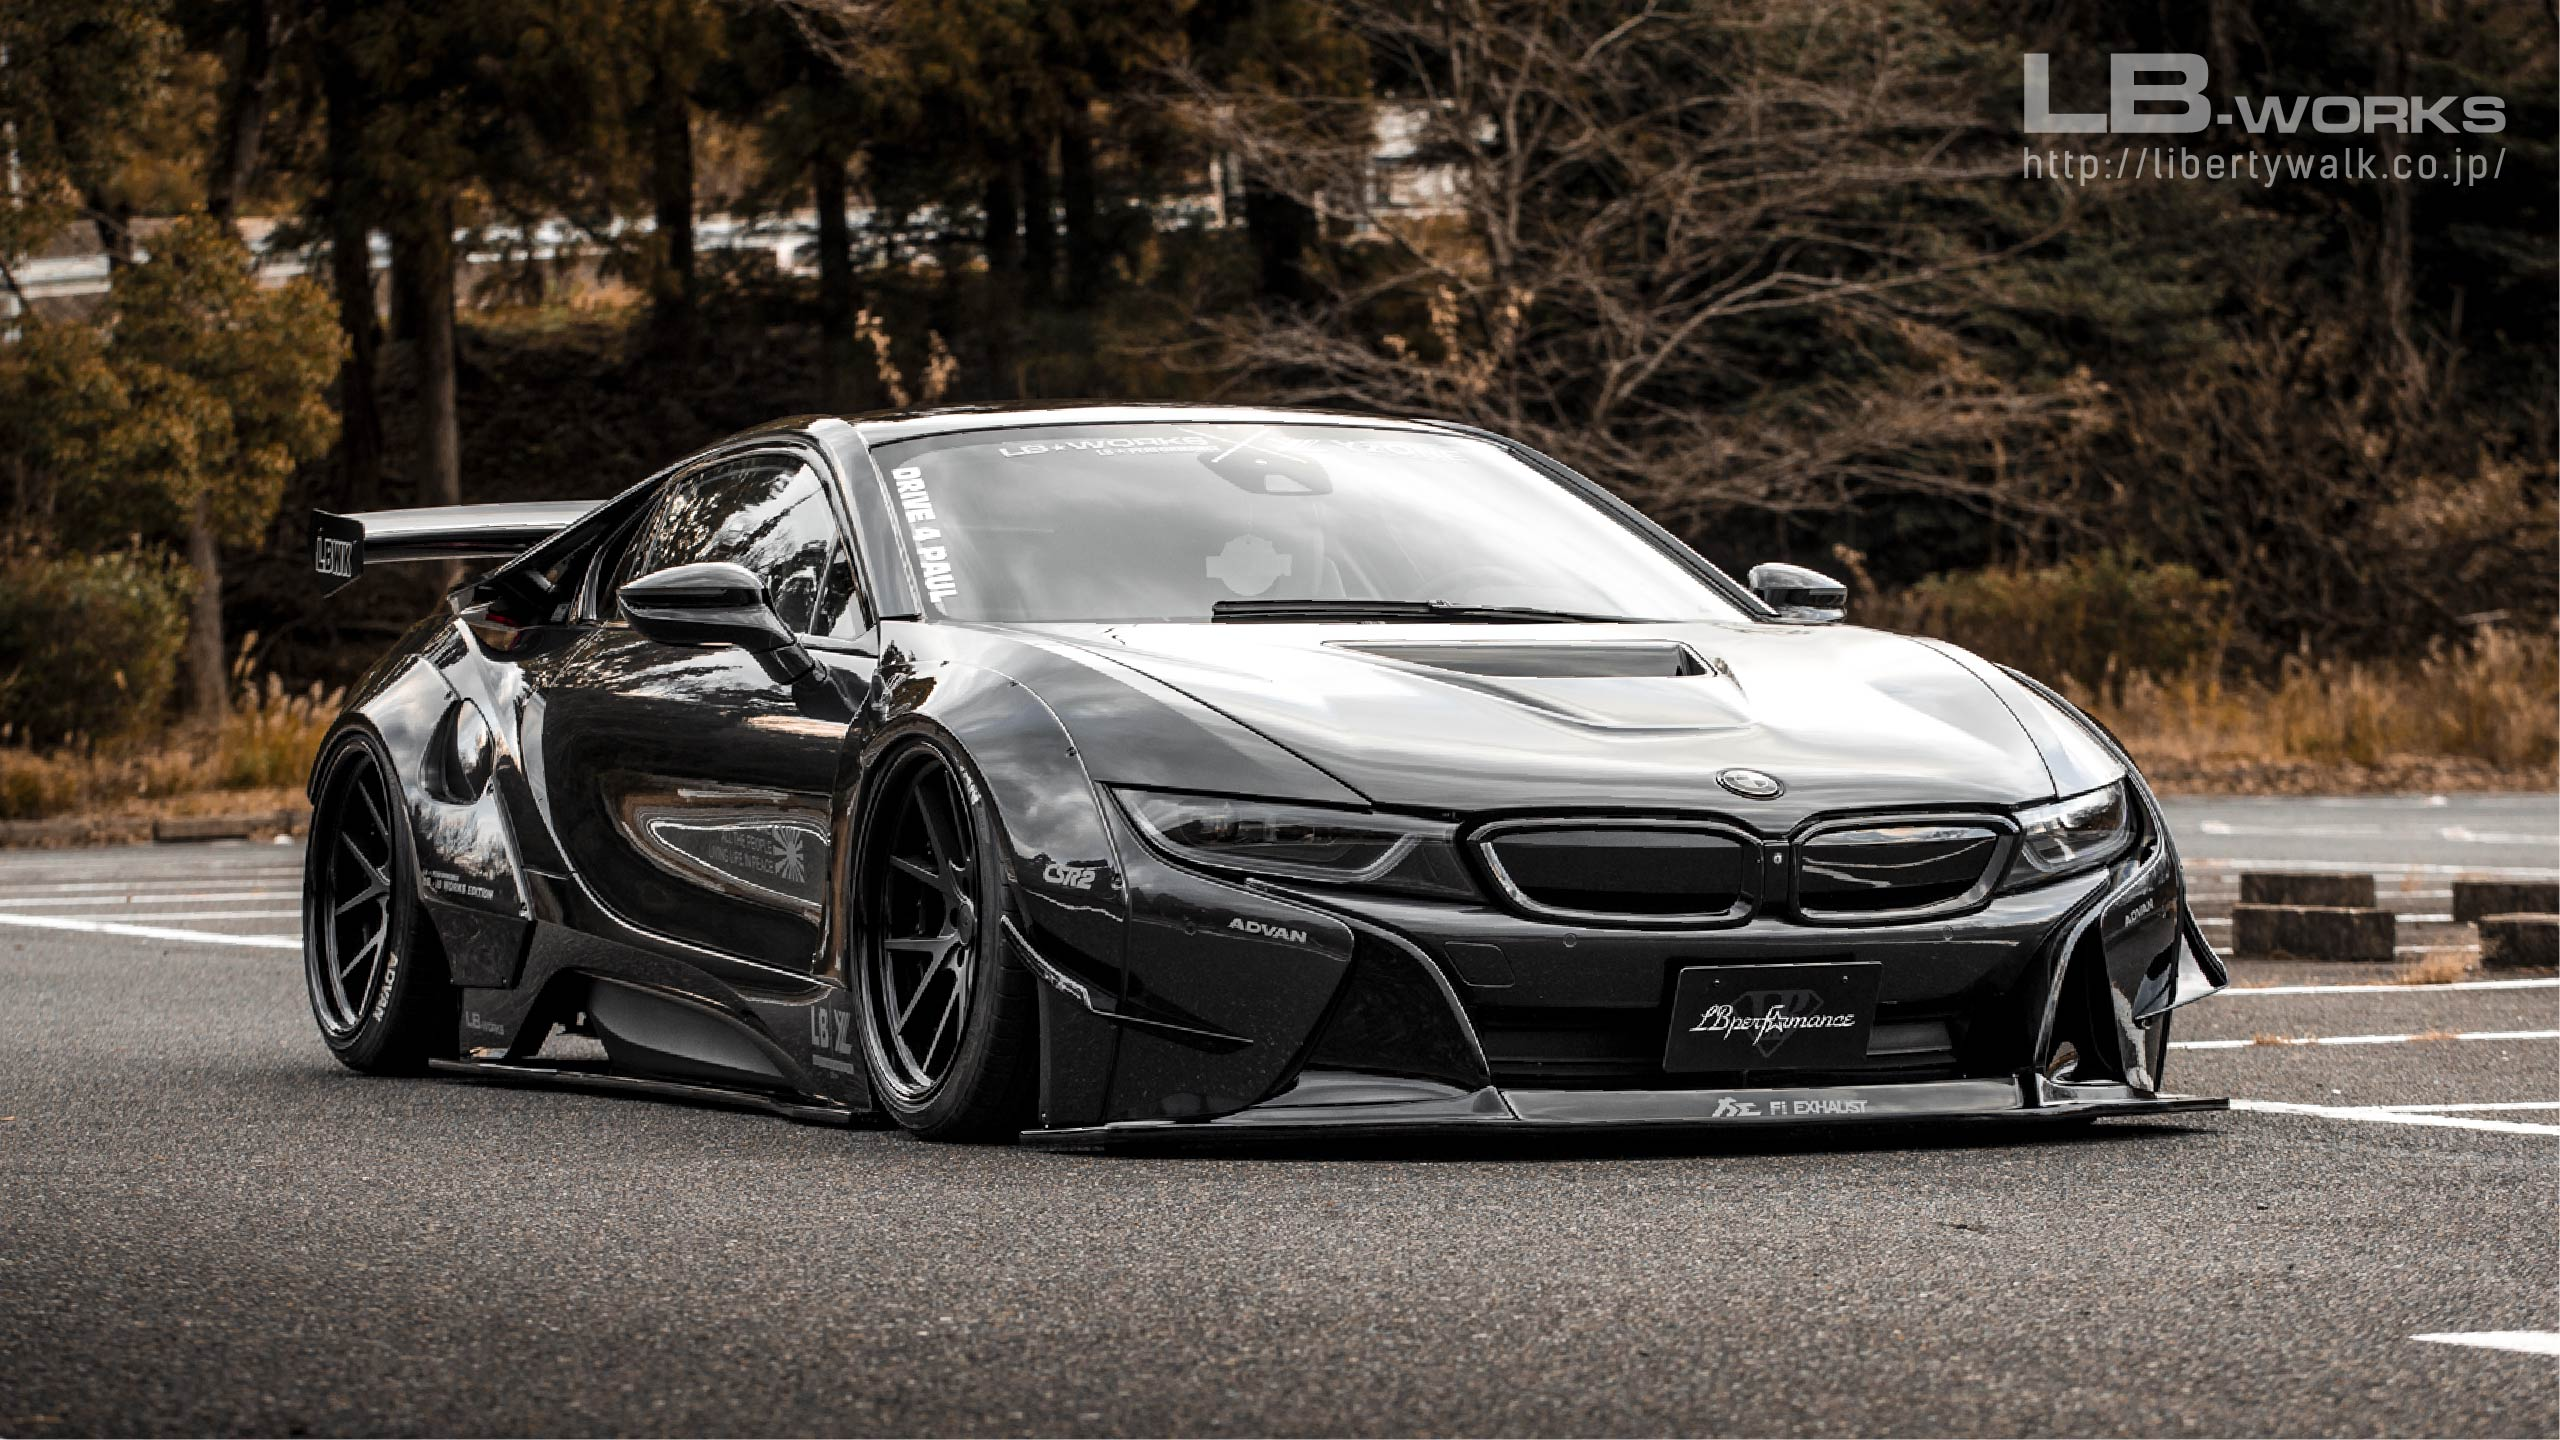 13-50 LB-WORKS × Y'z one BMW i8